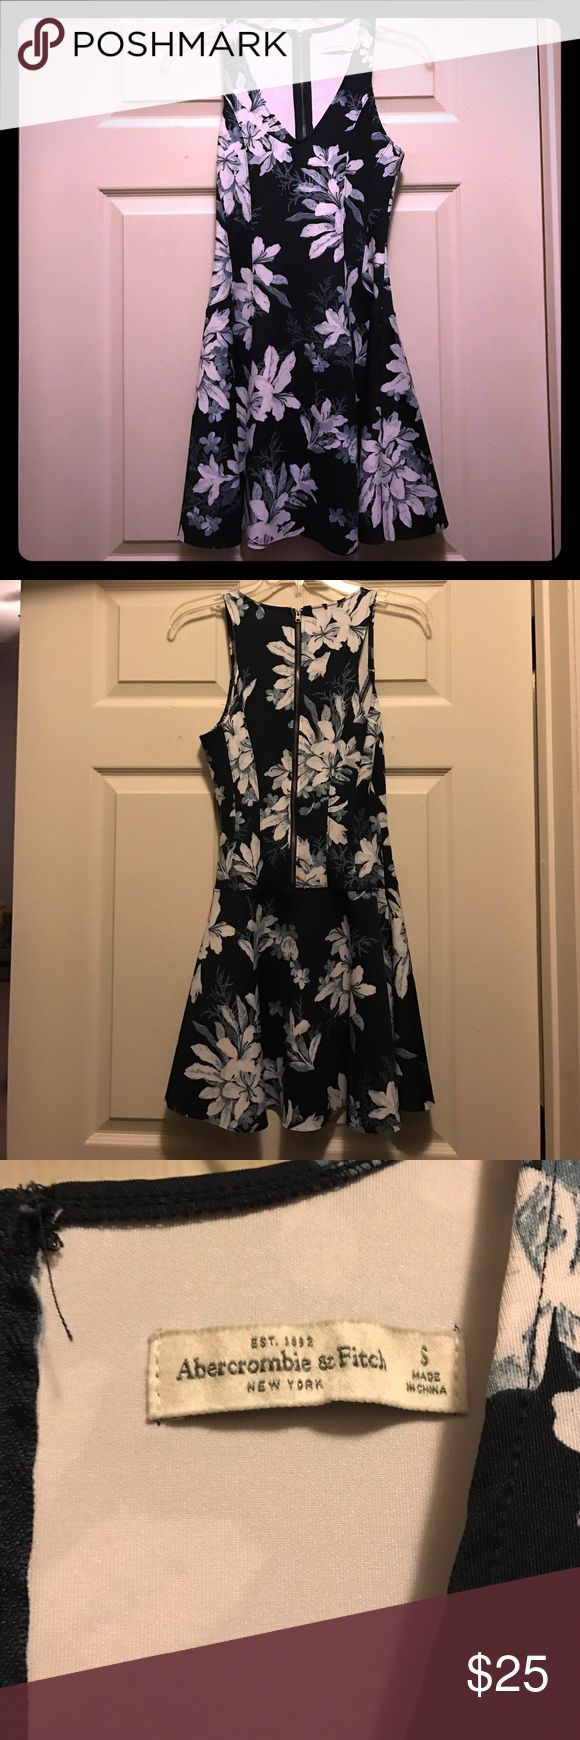 Navy Blue Floral Skater Dress Abercrombie & Fitch Navy Blue Floral Skater Dress. Worn once so it is in like new condition! Abercrombie & Fitch Dresses